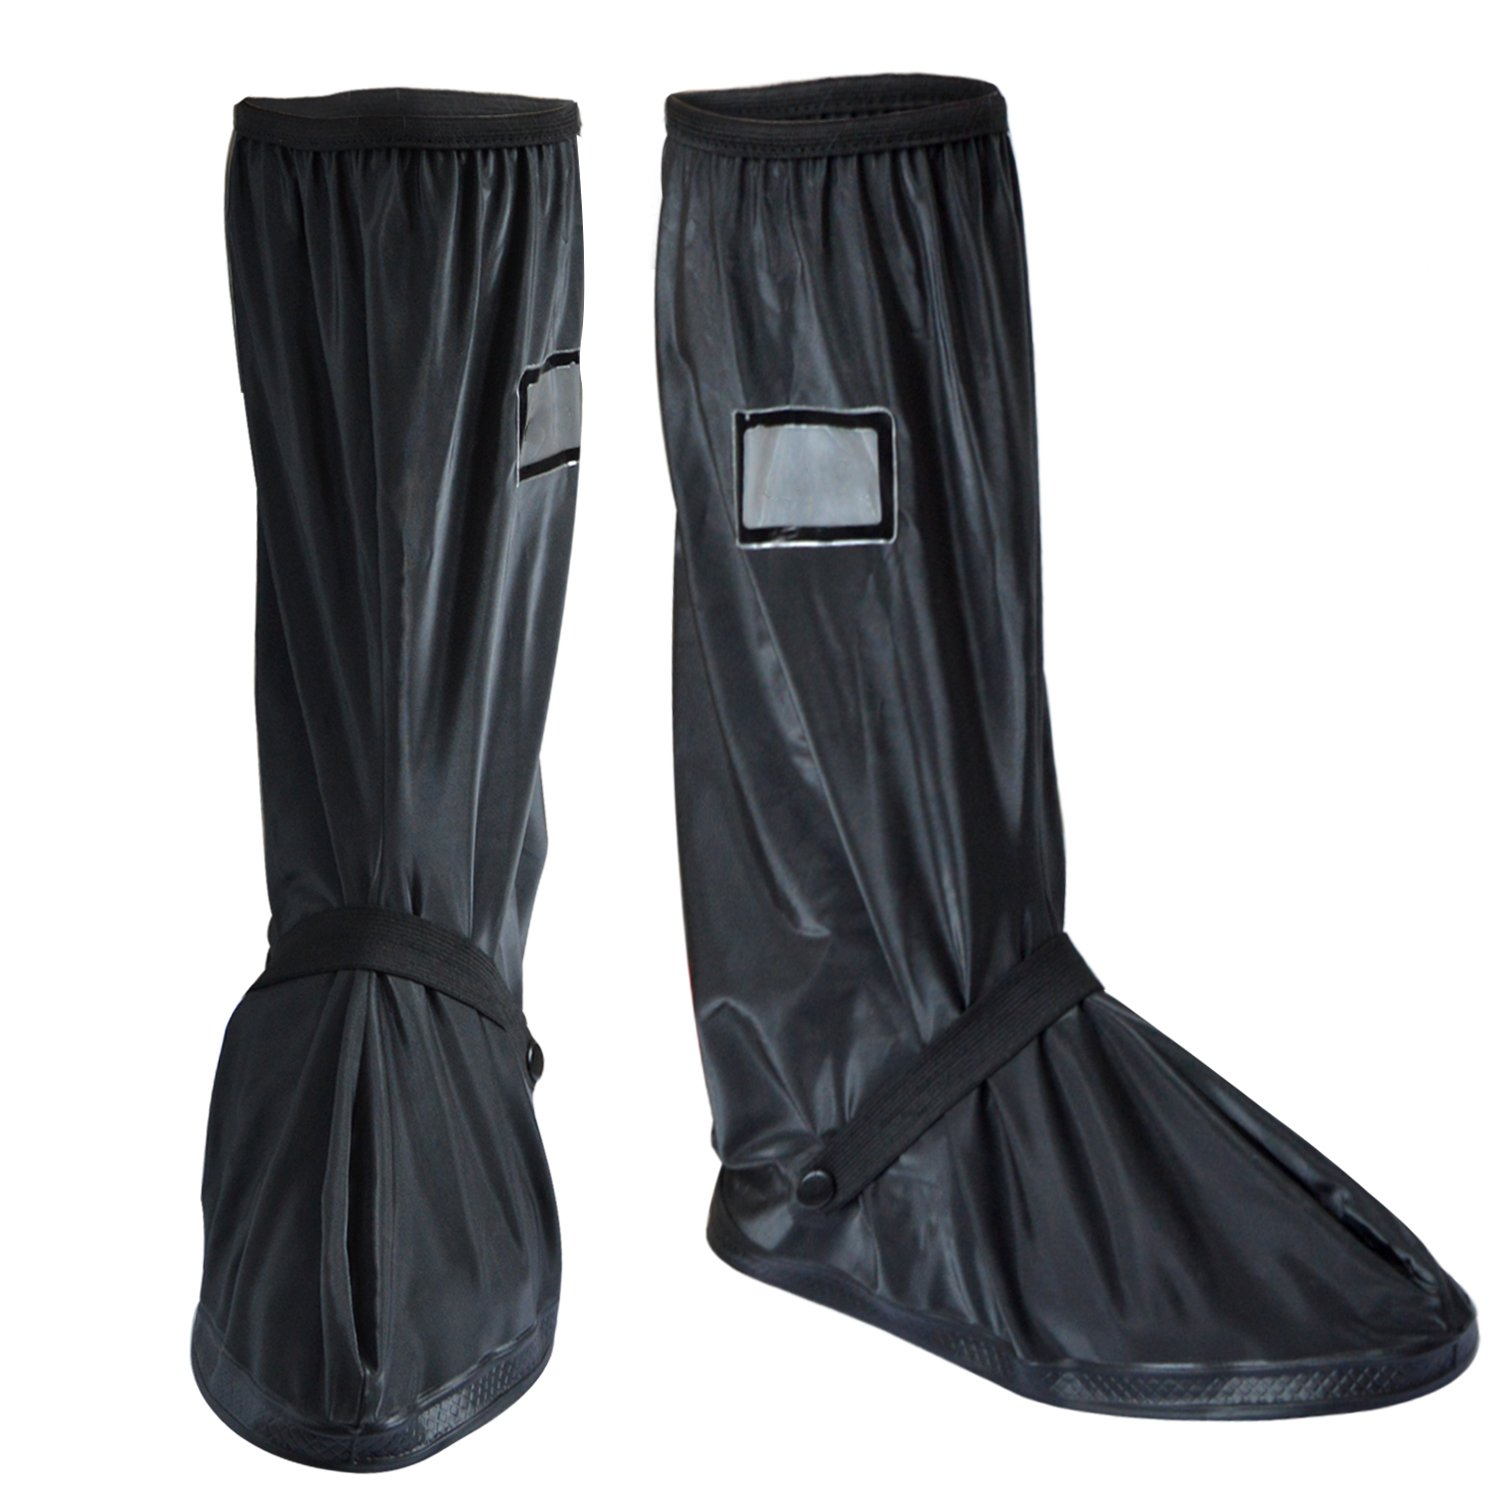 Waterproof Boot Cover, CarBoss Gear Rain Boot Shoe Cover with Side Zipper (Euro 44-45/ US 10-11) - Overshoes Cover for Outdoor Riding Motorbike Dirt Road Bike Motorcycle Cycling Biker